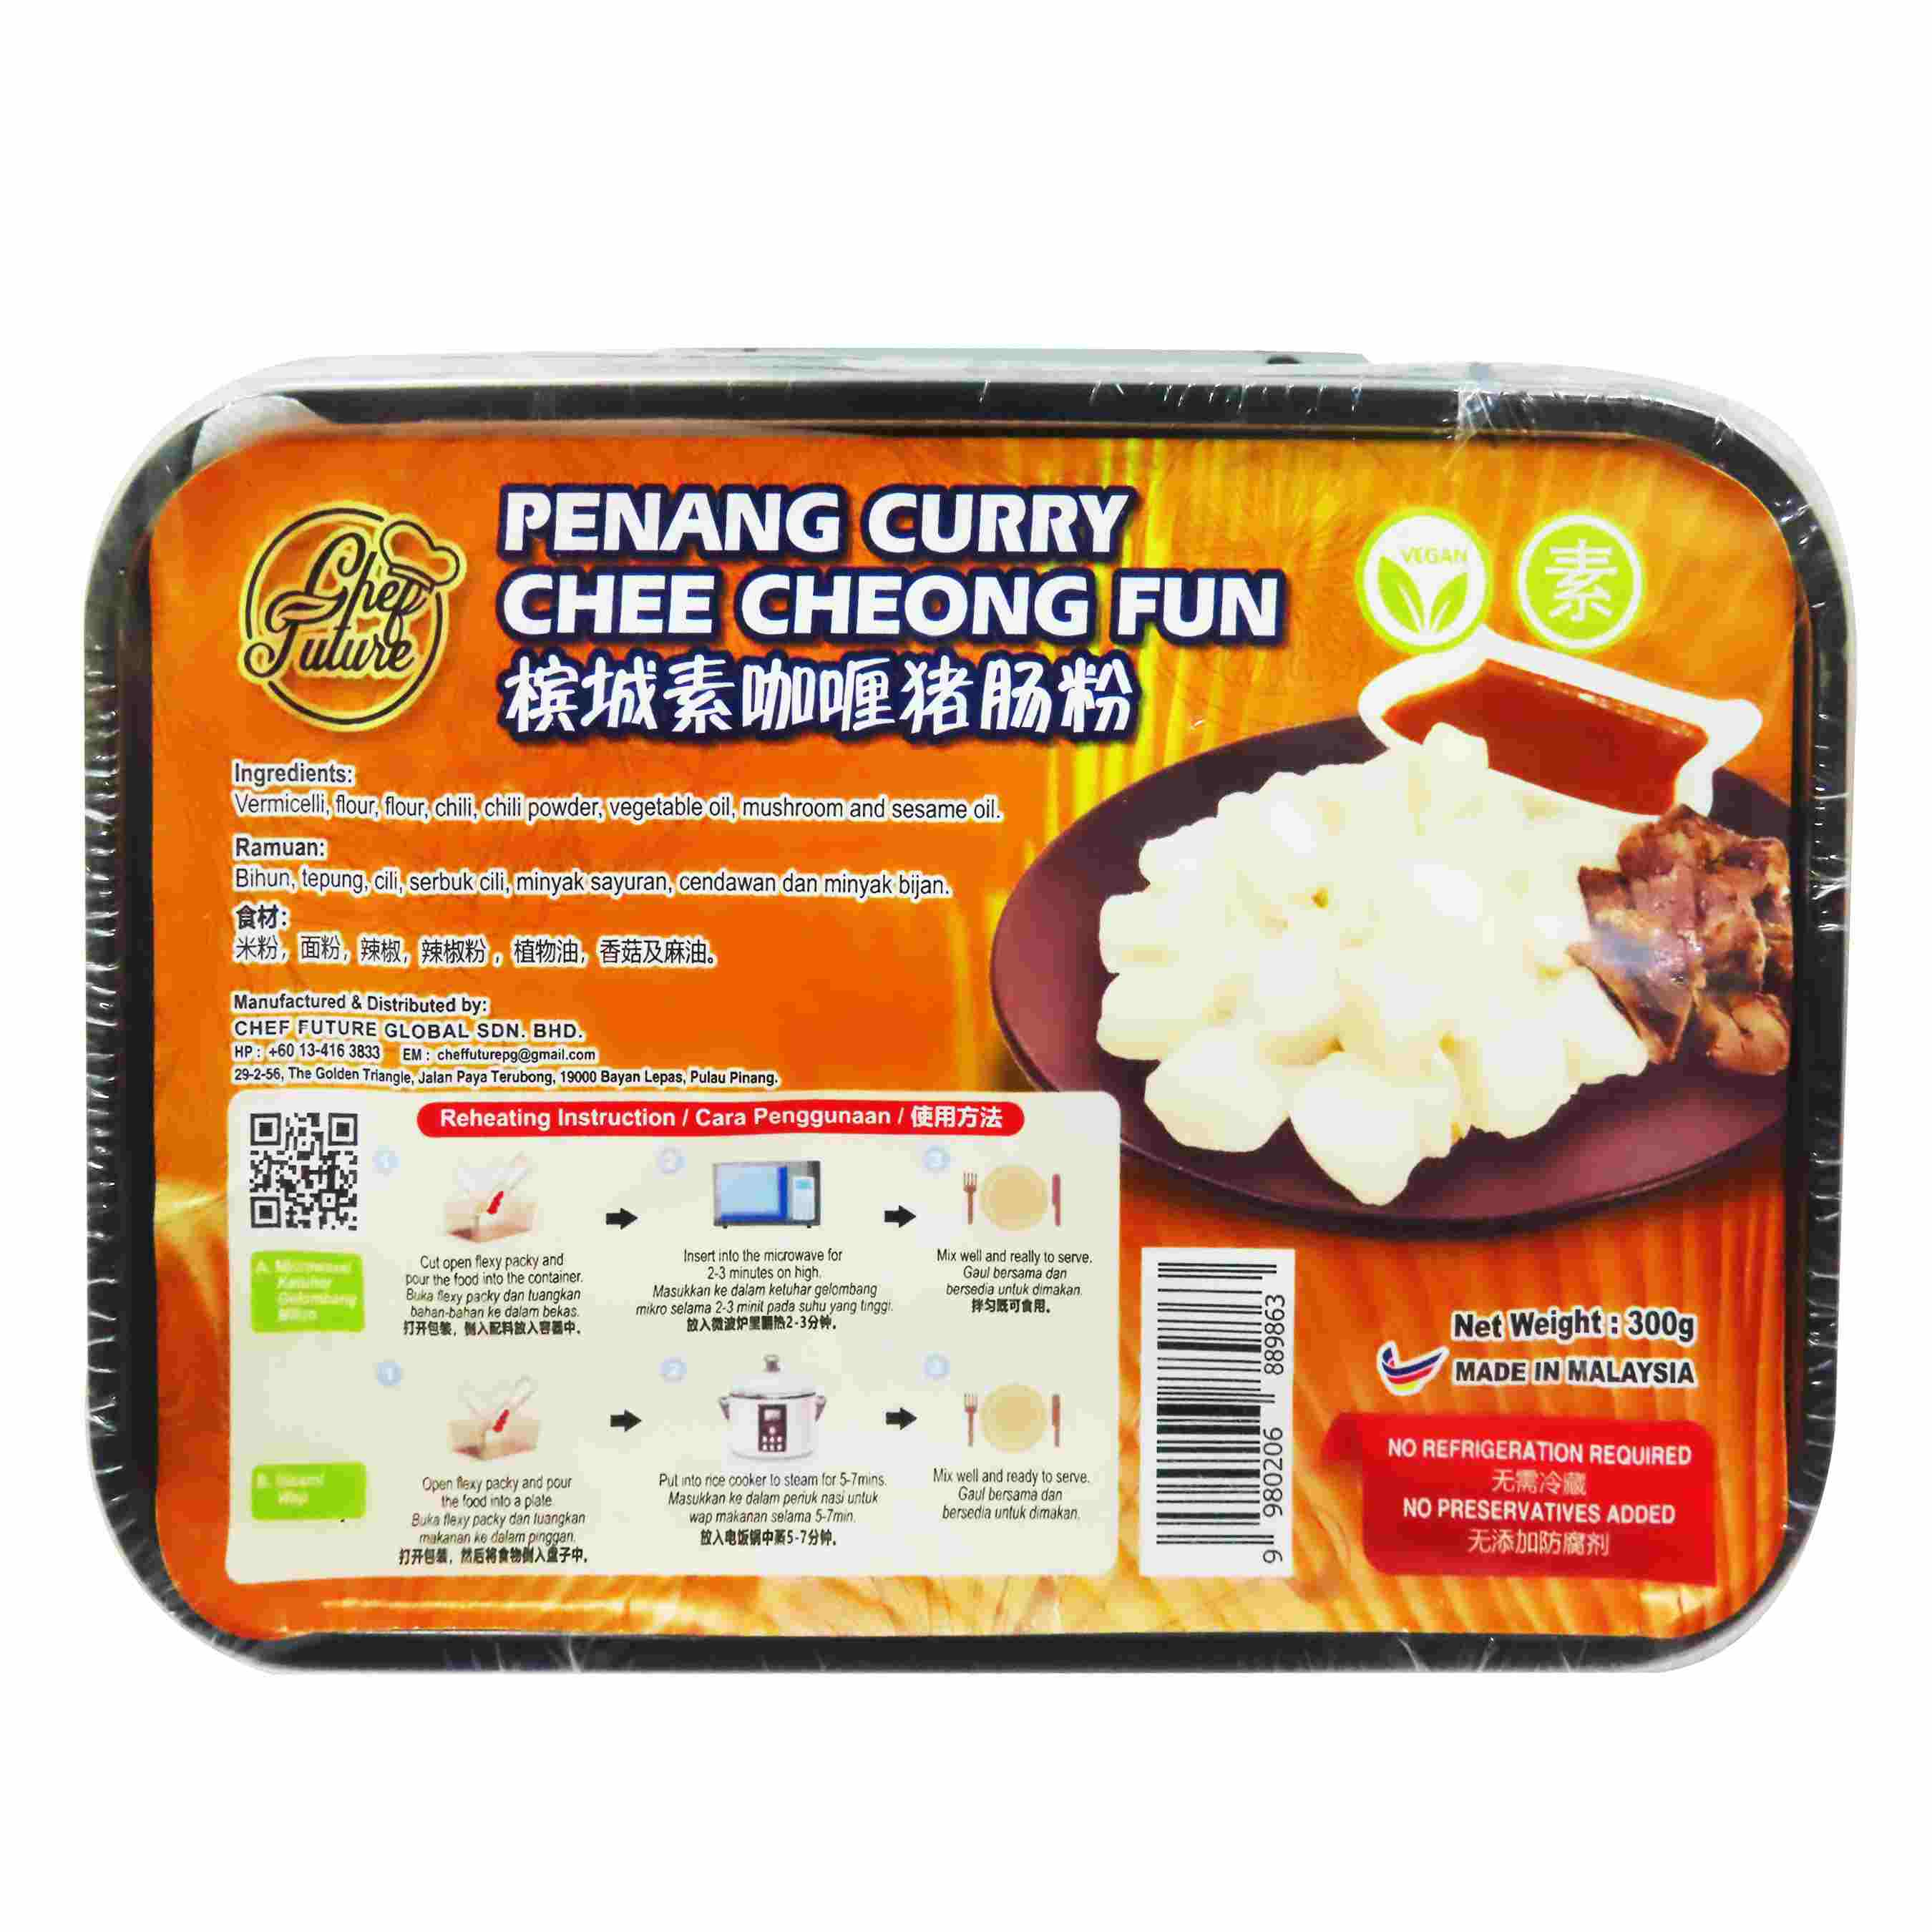 Image Penang Curry Chee Cheong Fun 槟城咖哩猪肠粉 300grams